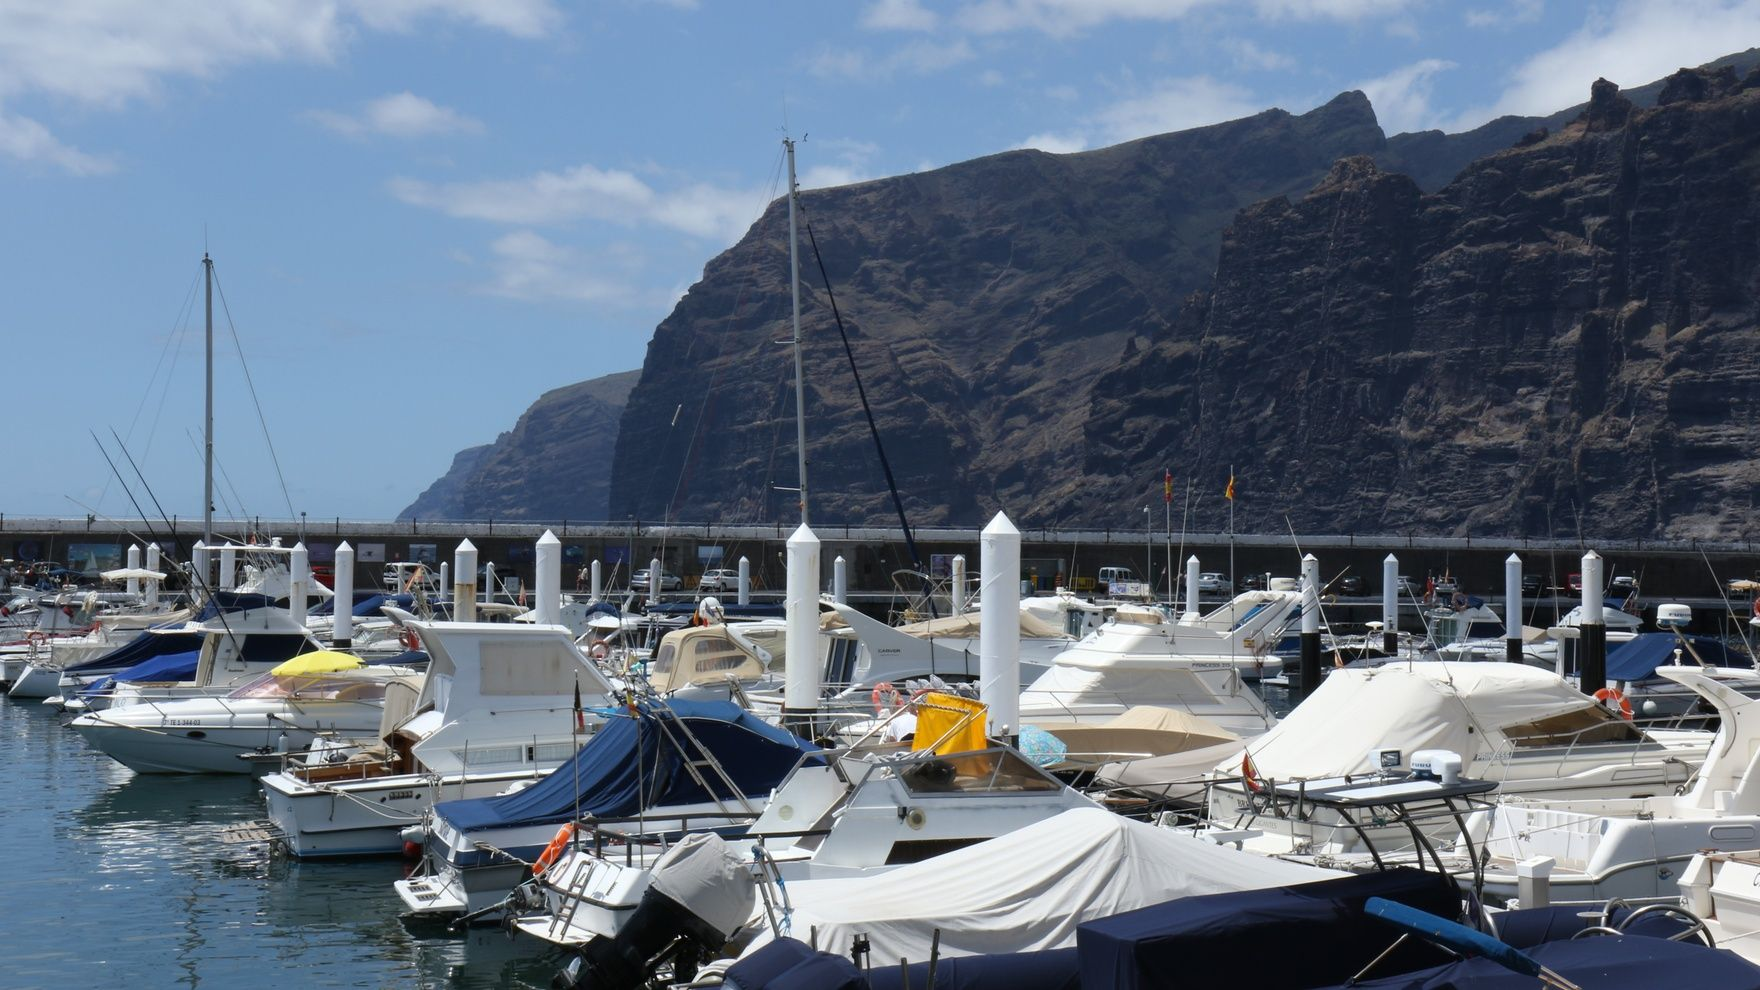 8th ofMarch inthe Canary Islands